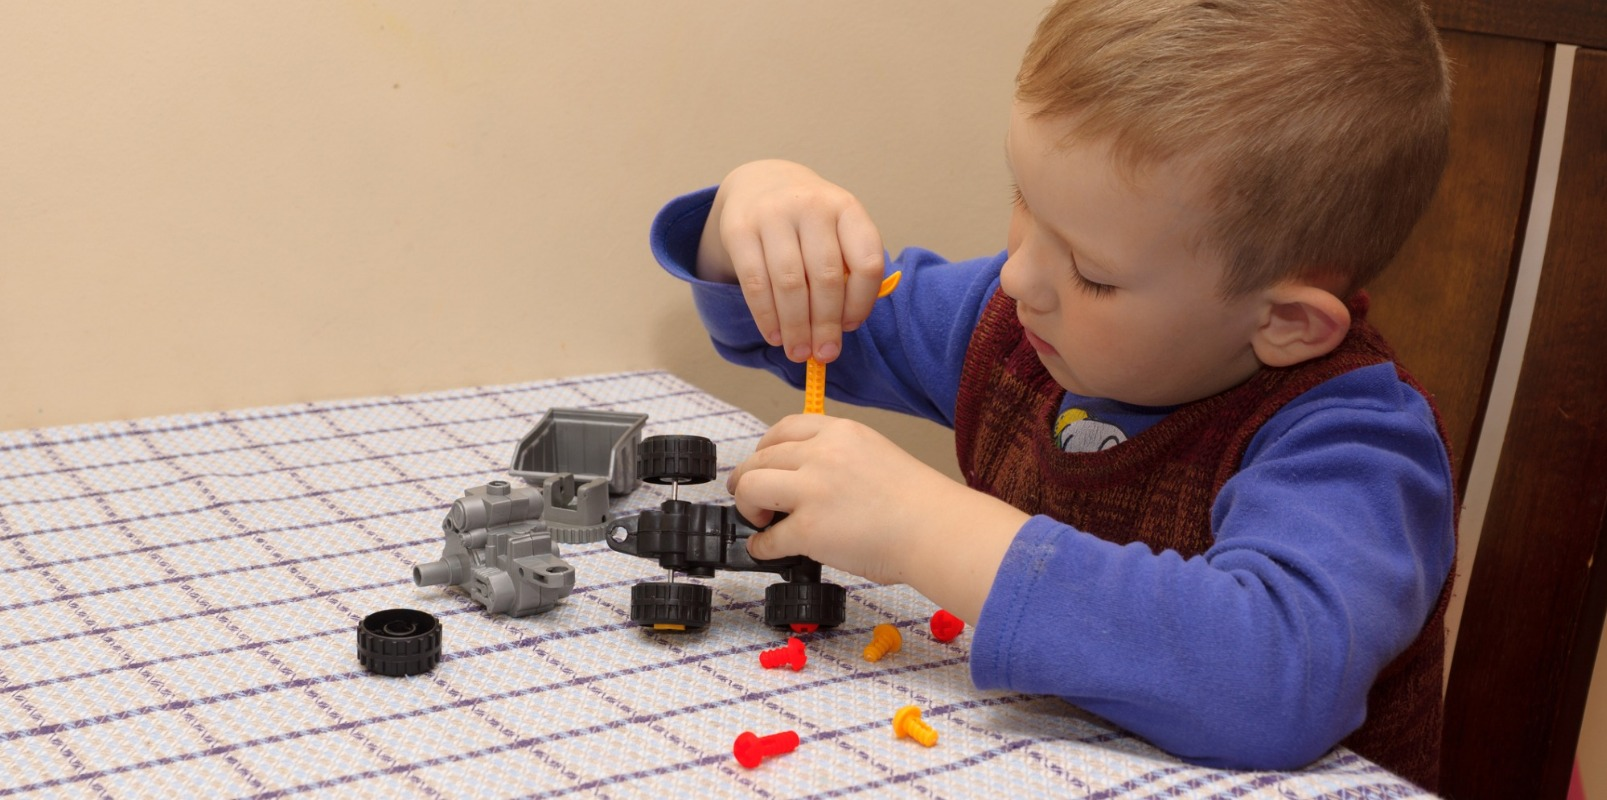 There are simpler model car kits that children can make on their own